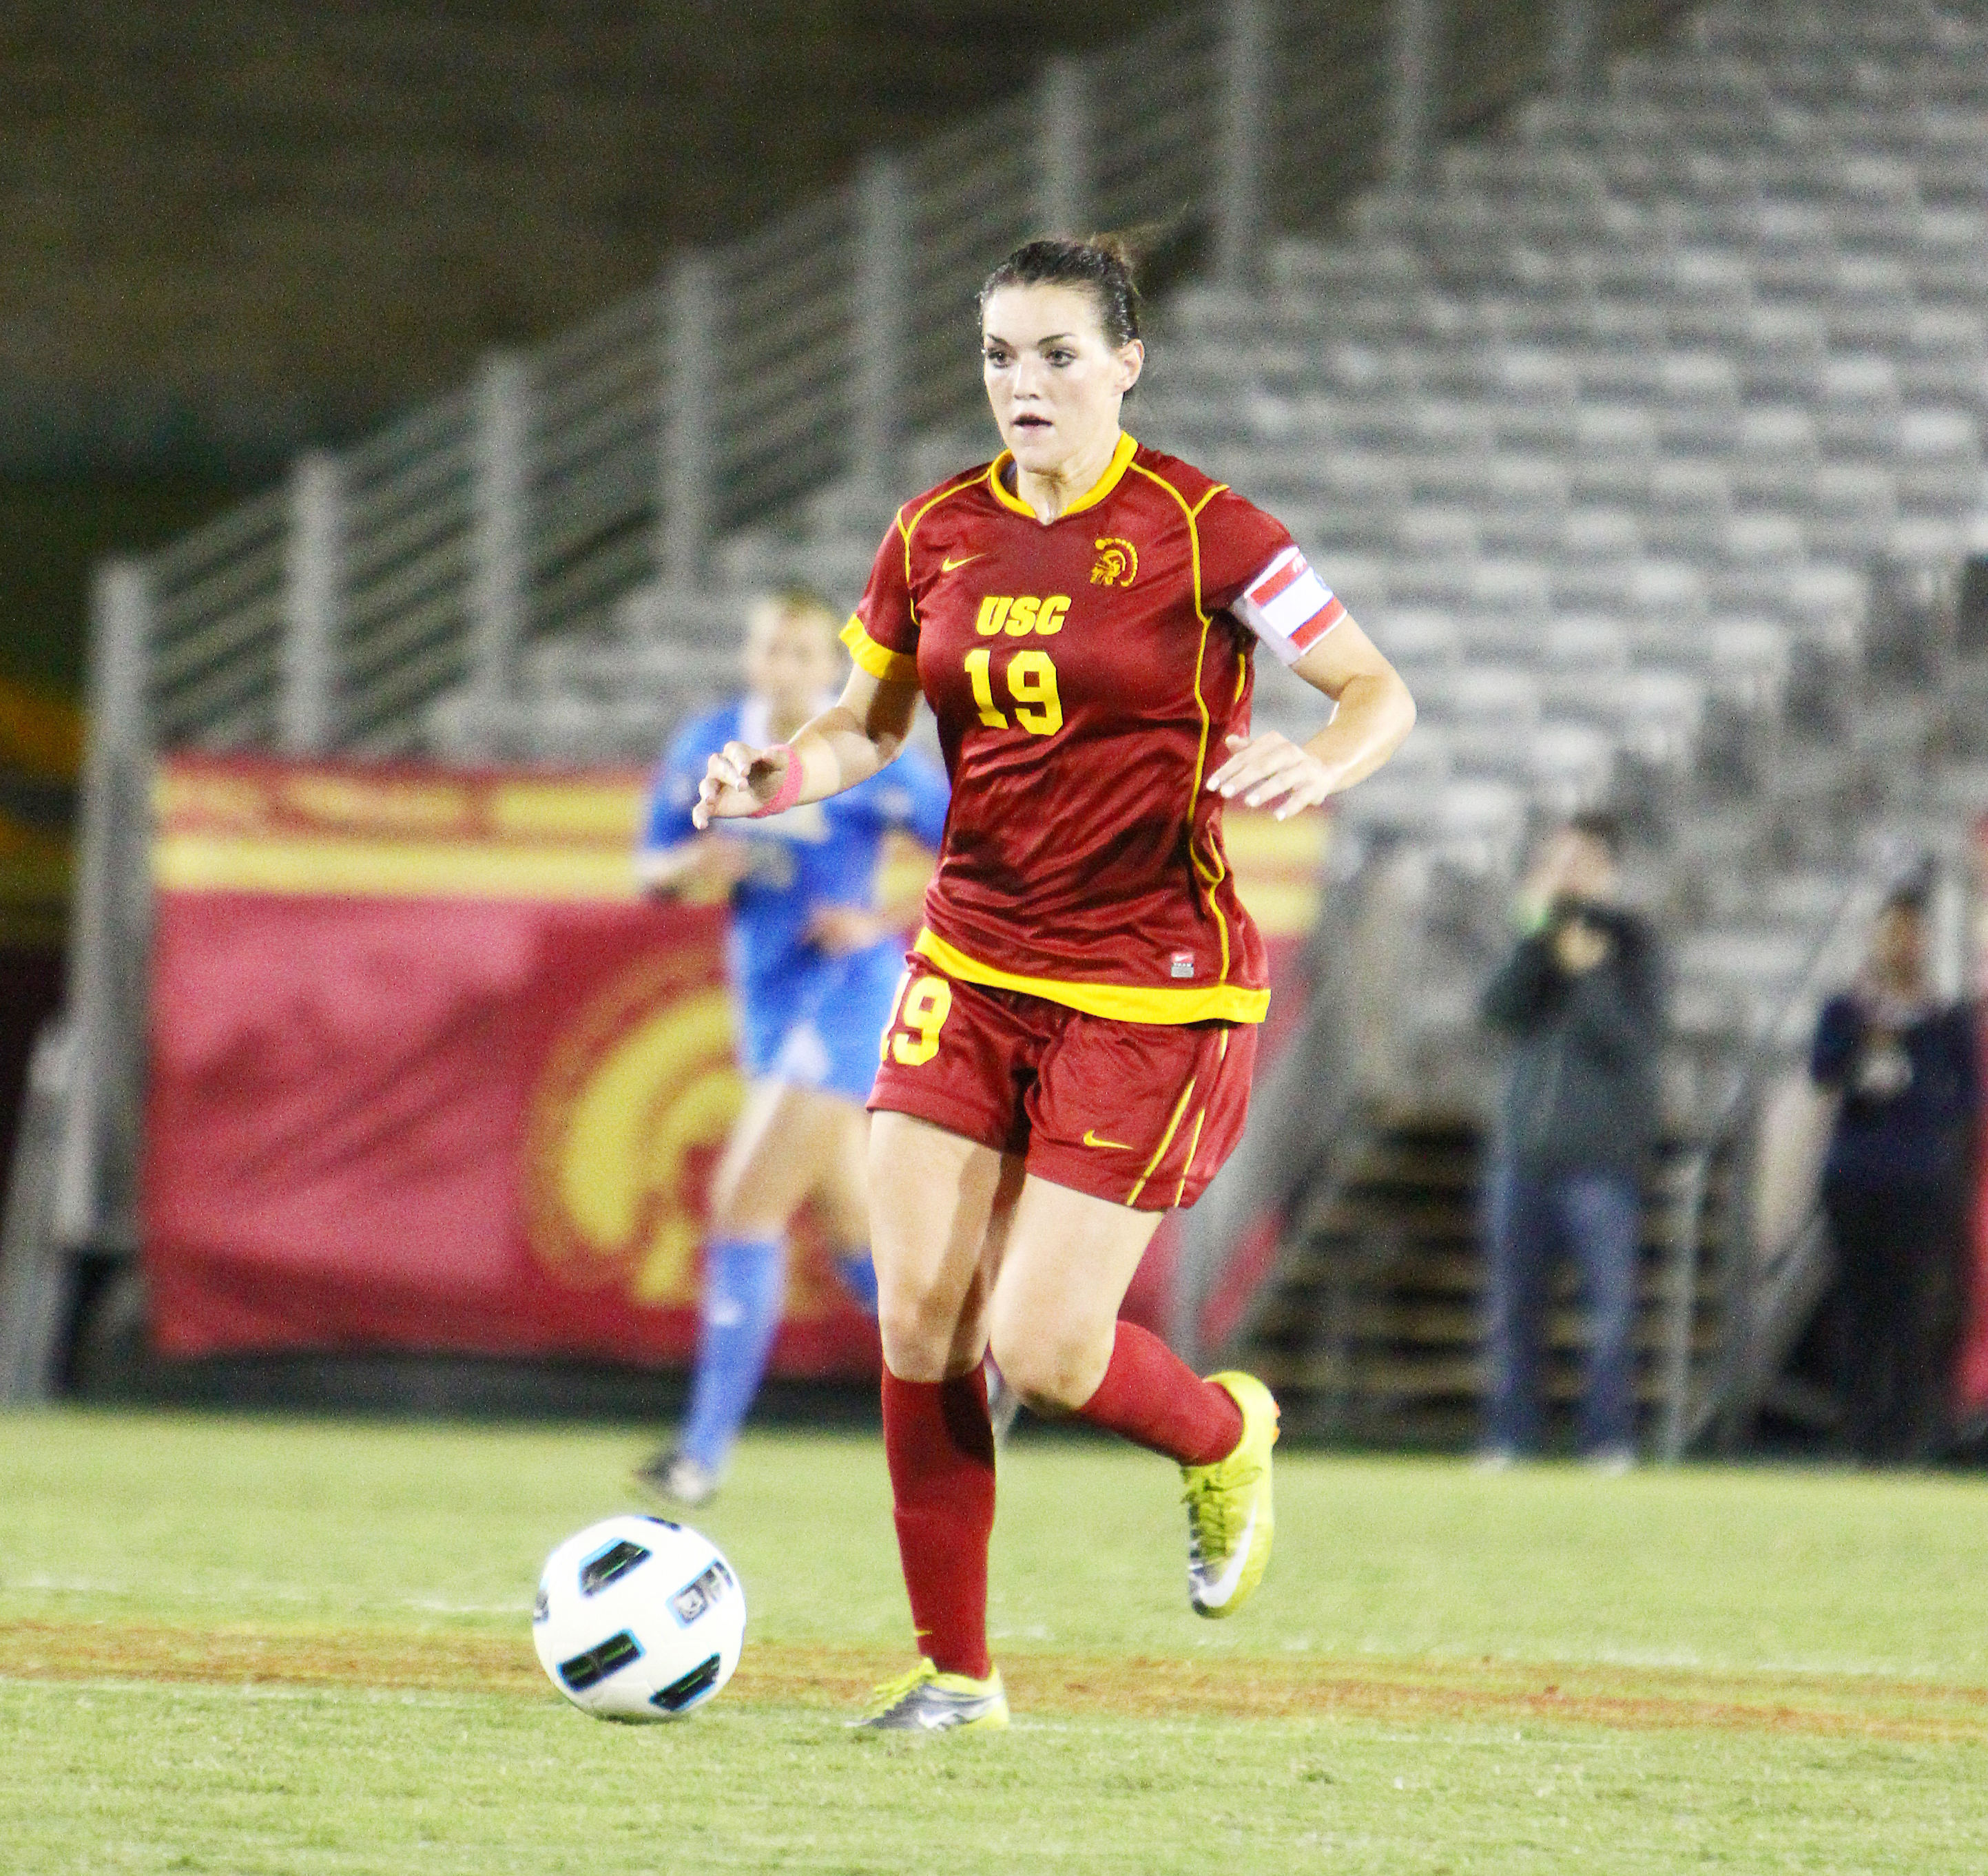 USC felled in second round of NCAA | Daily Trojan